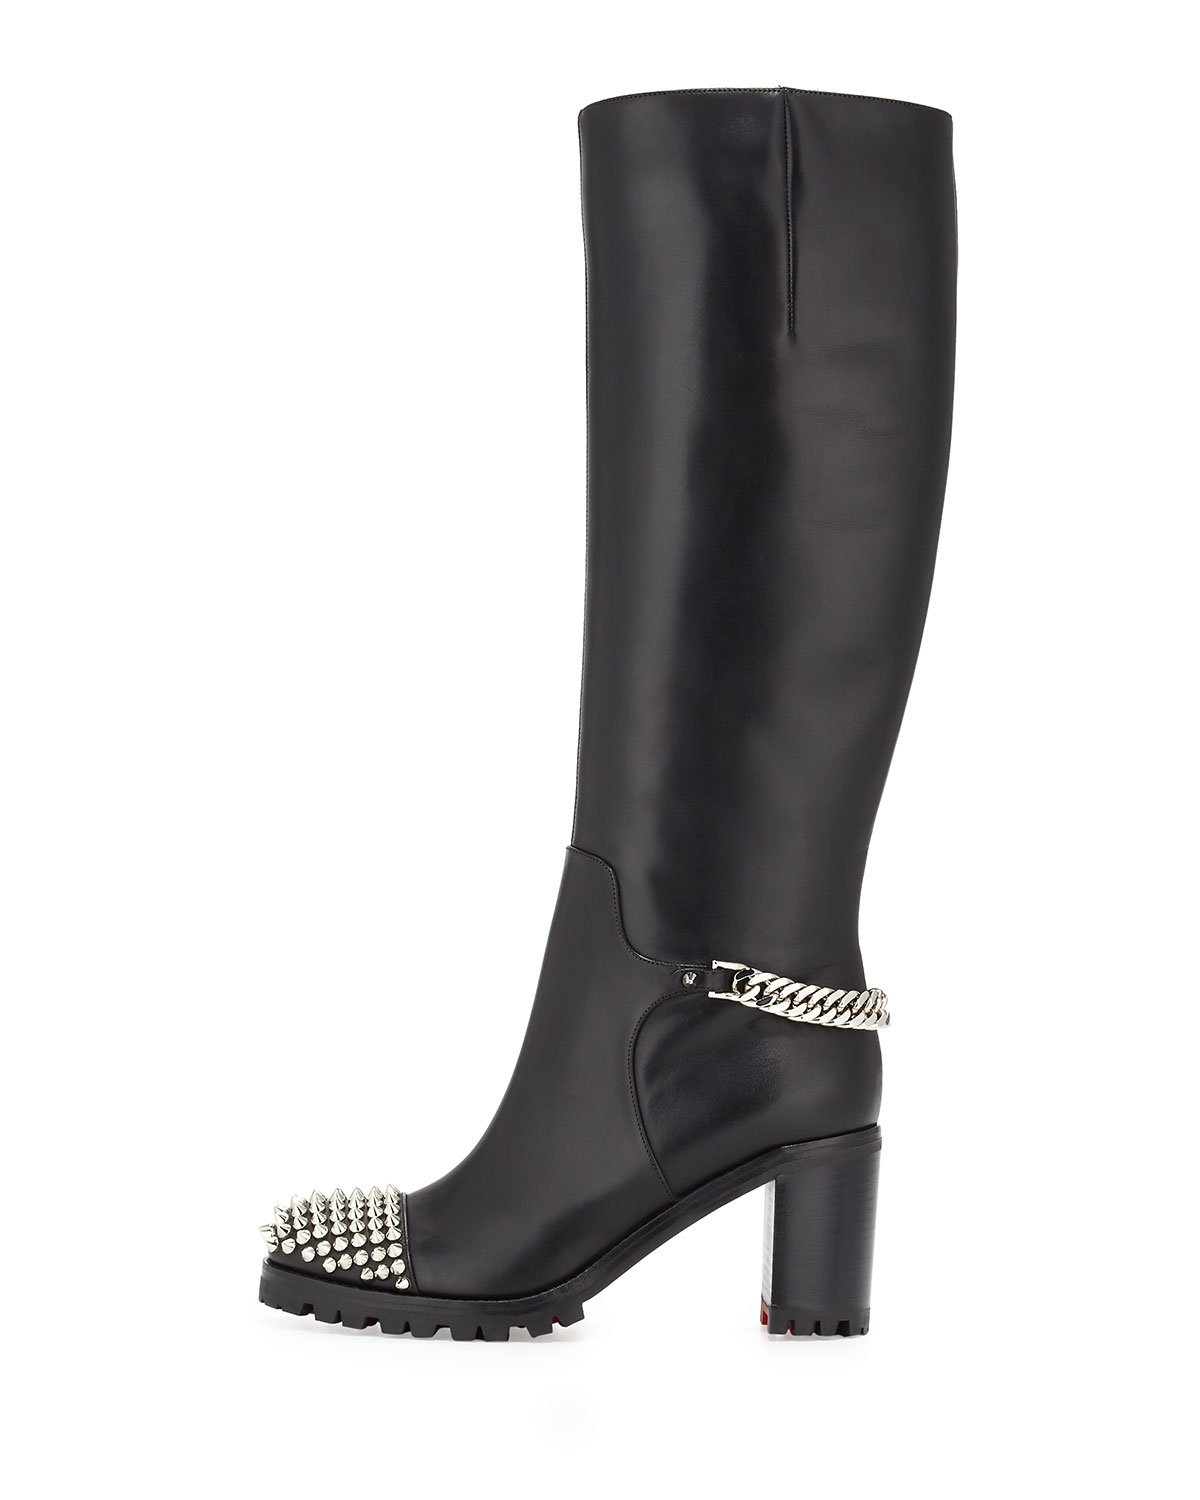 cl shoes - Christian louboutin Napaleona Spiked-toe Red Sole Knee Boot in ...